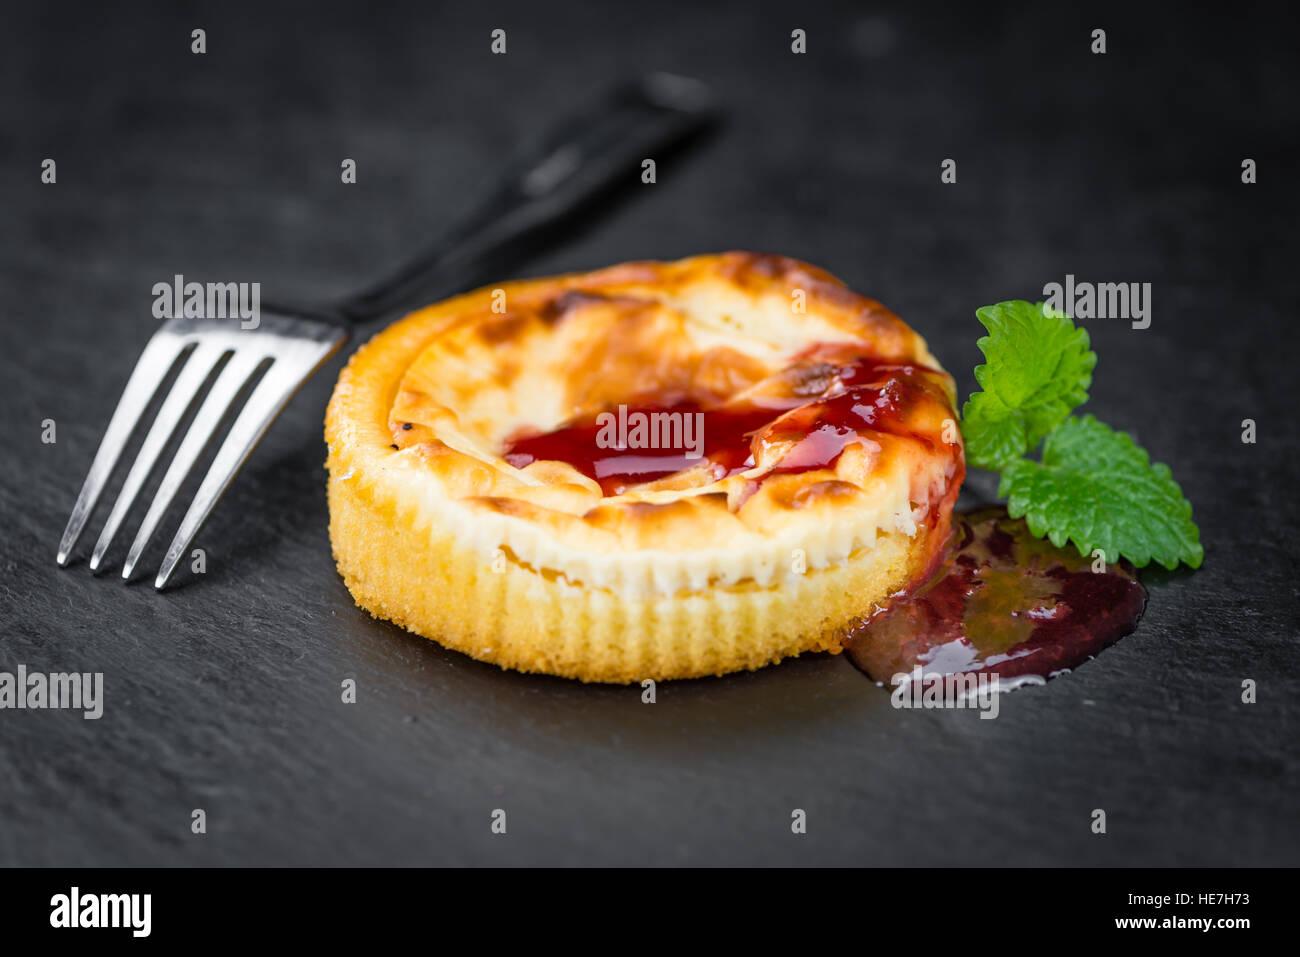 Fresh made Mini Cheesecake (with Sauce) on a vintage background (close-up shot) - Stock Image